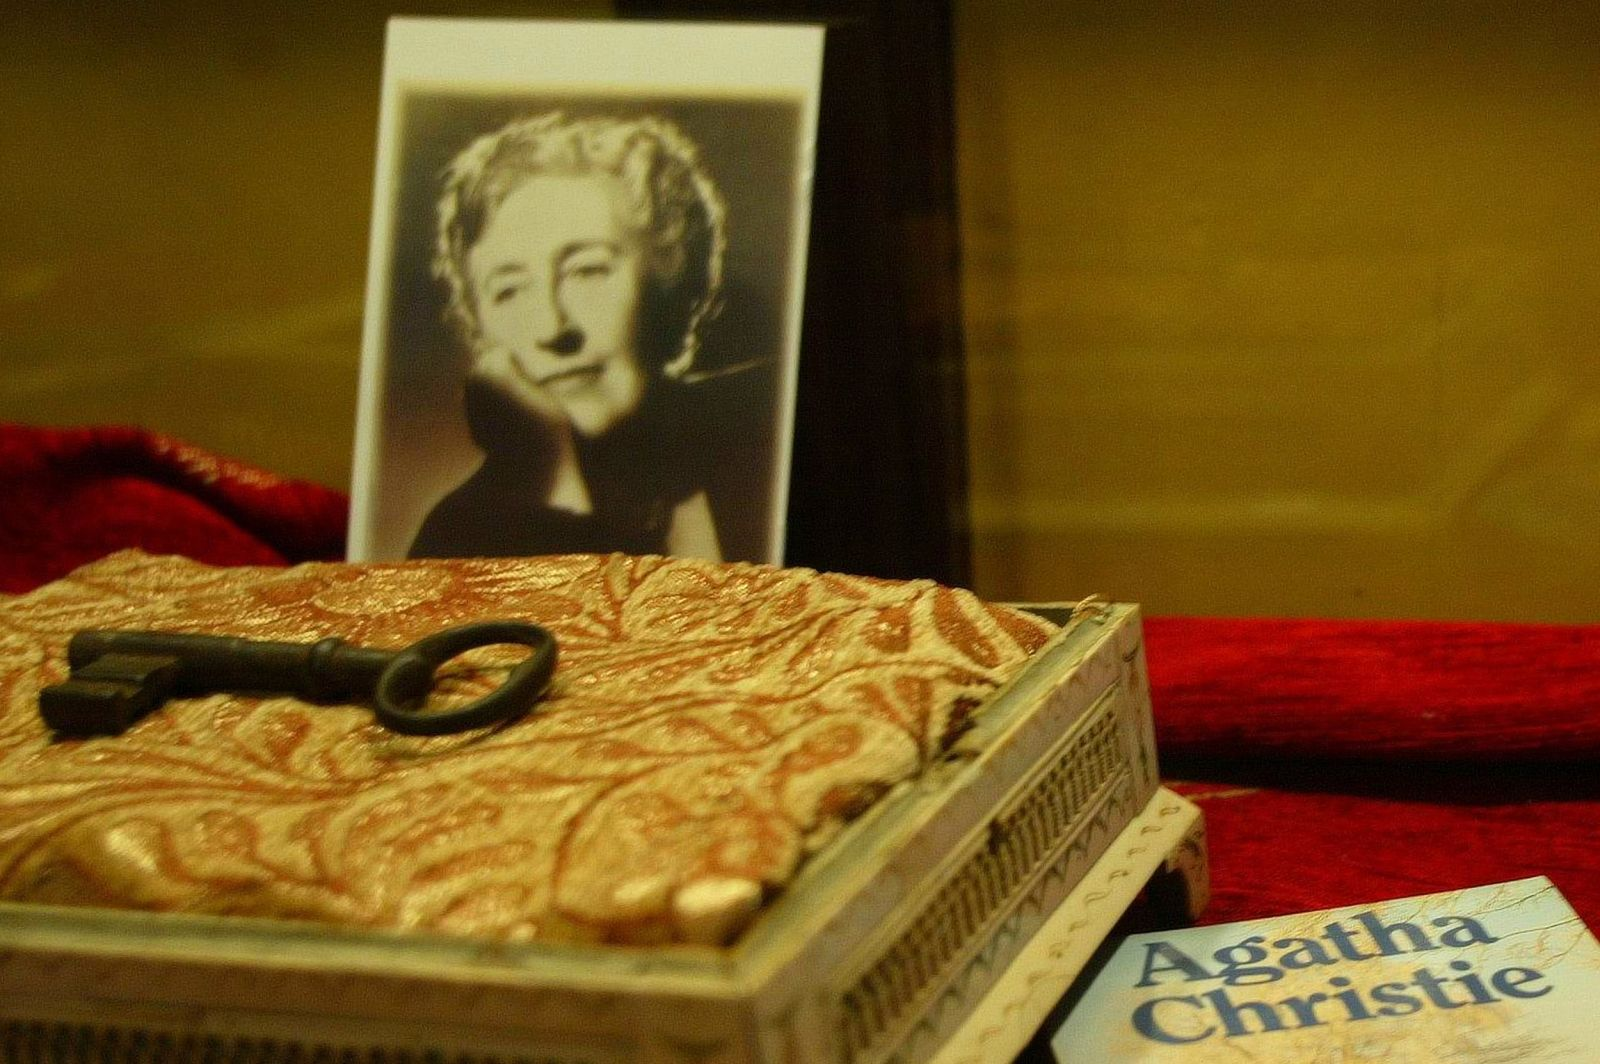 Agatha Christie Works Discovered